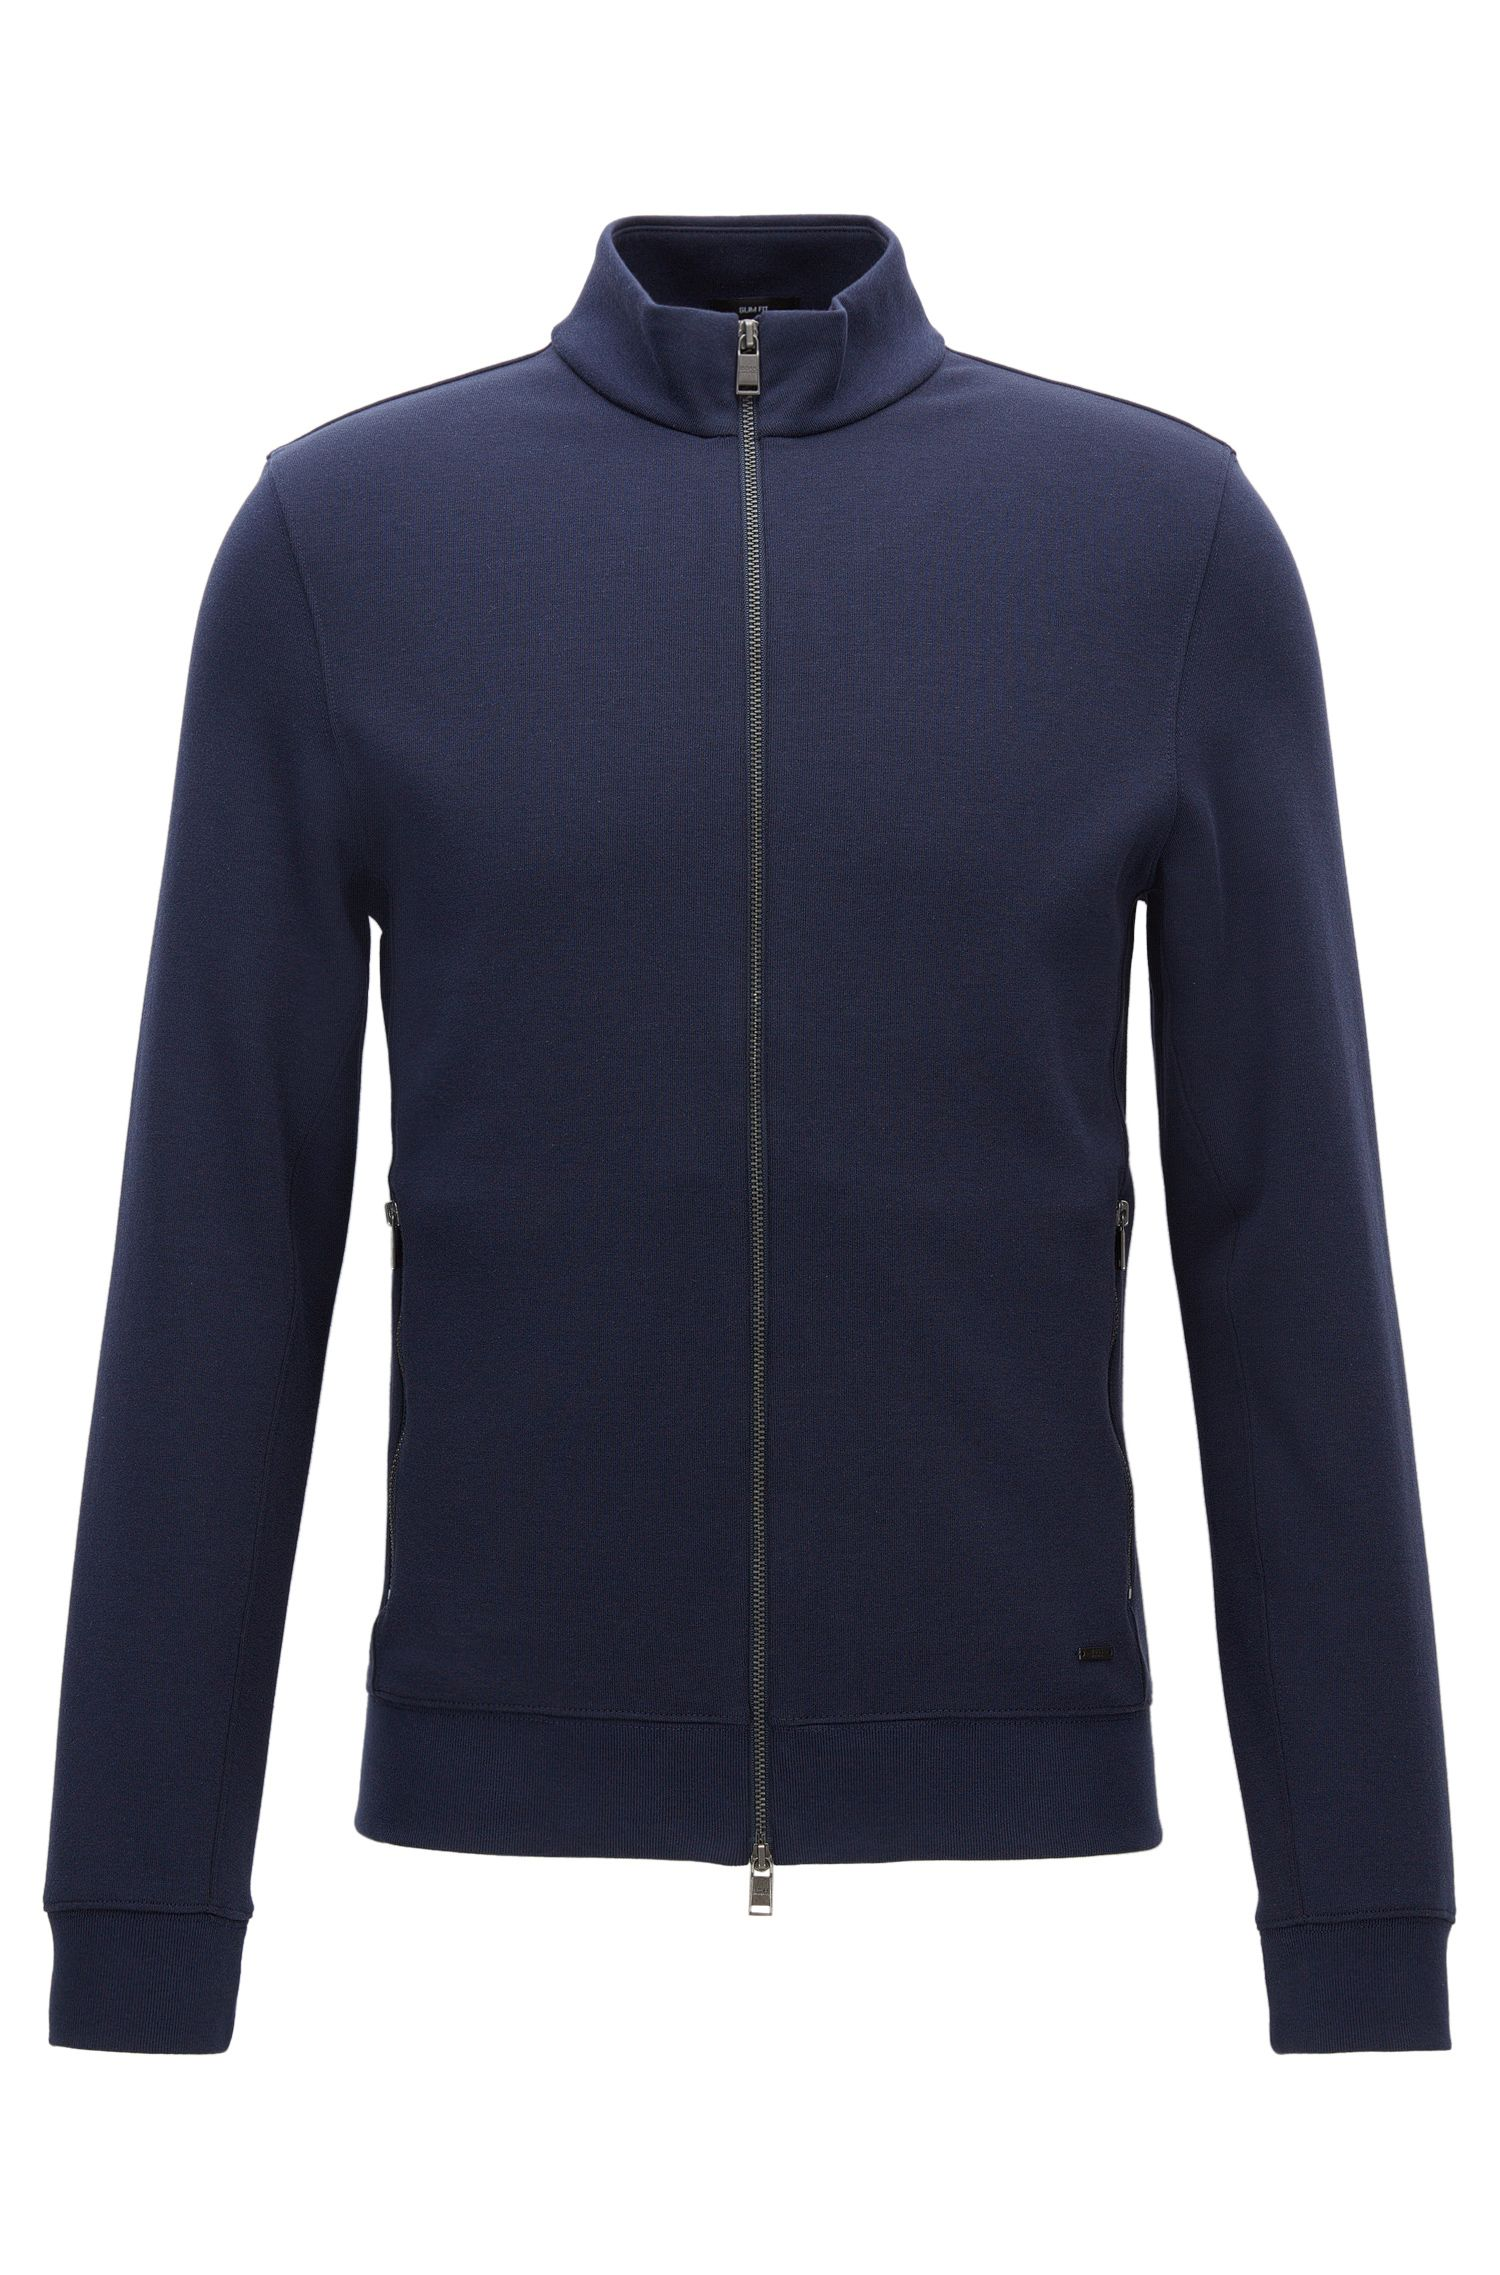 Slim-fit double-face sweatshirt jacket